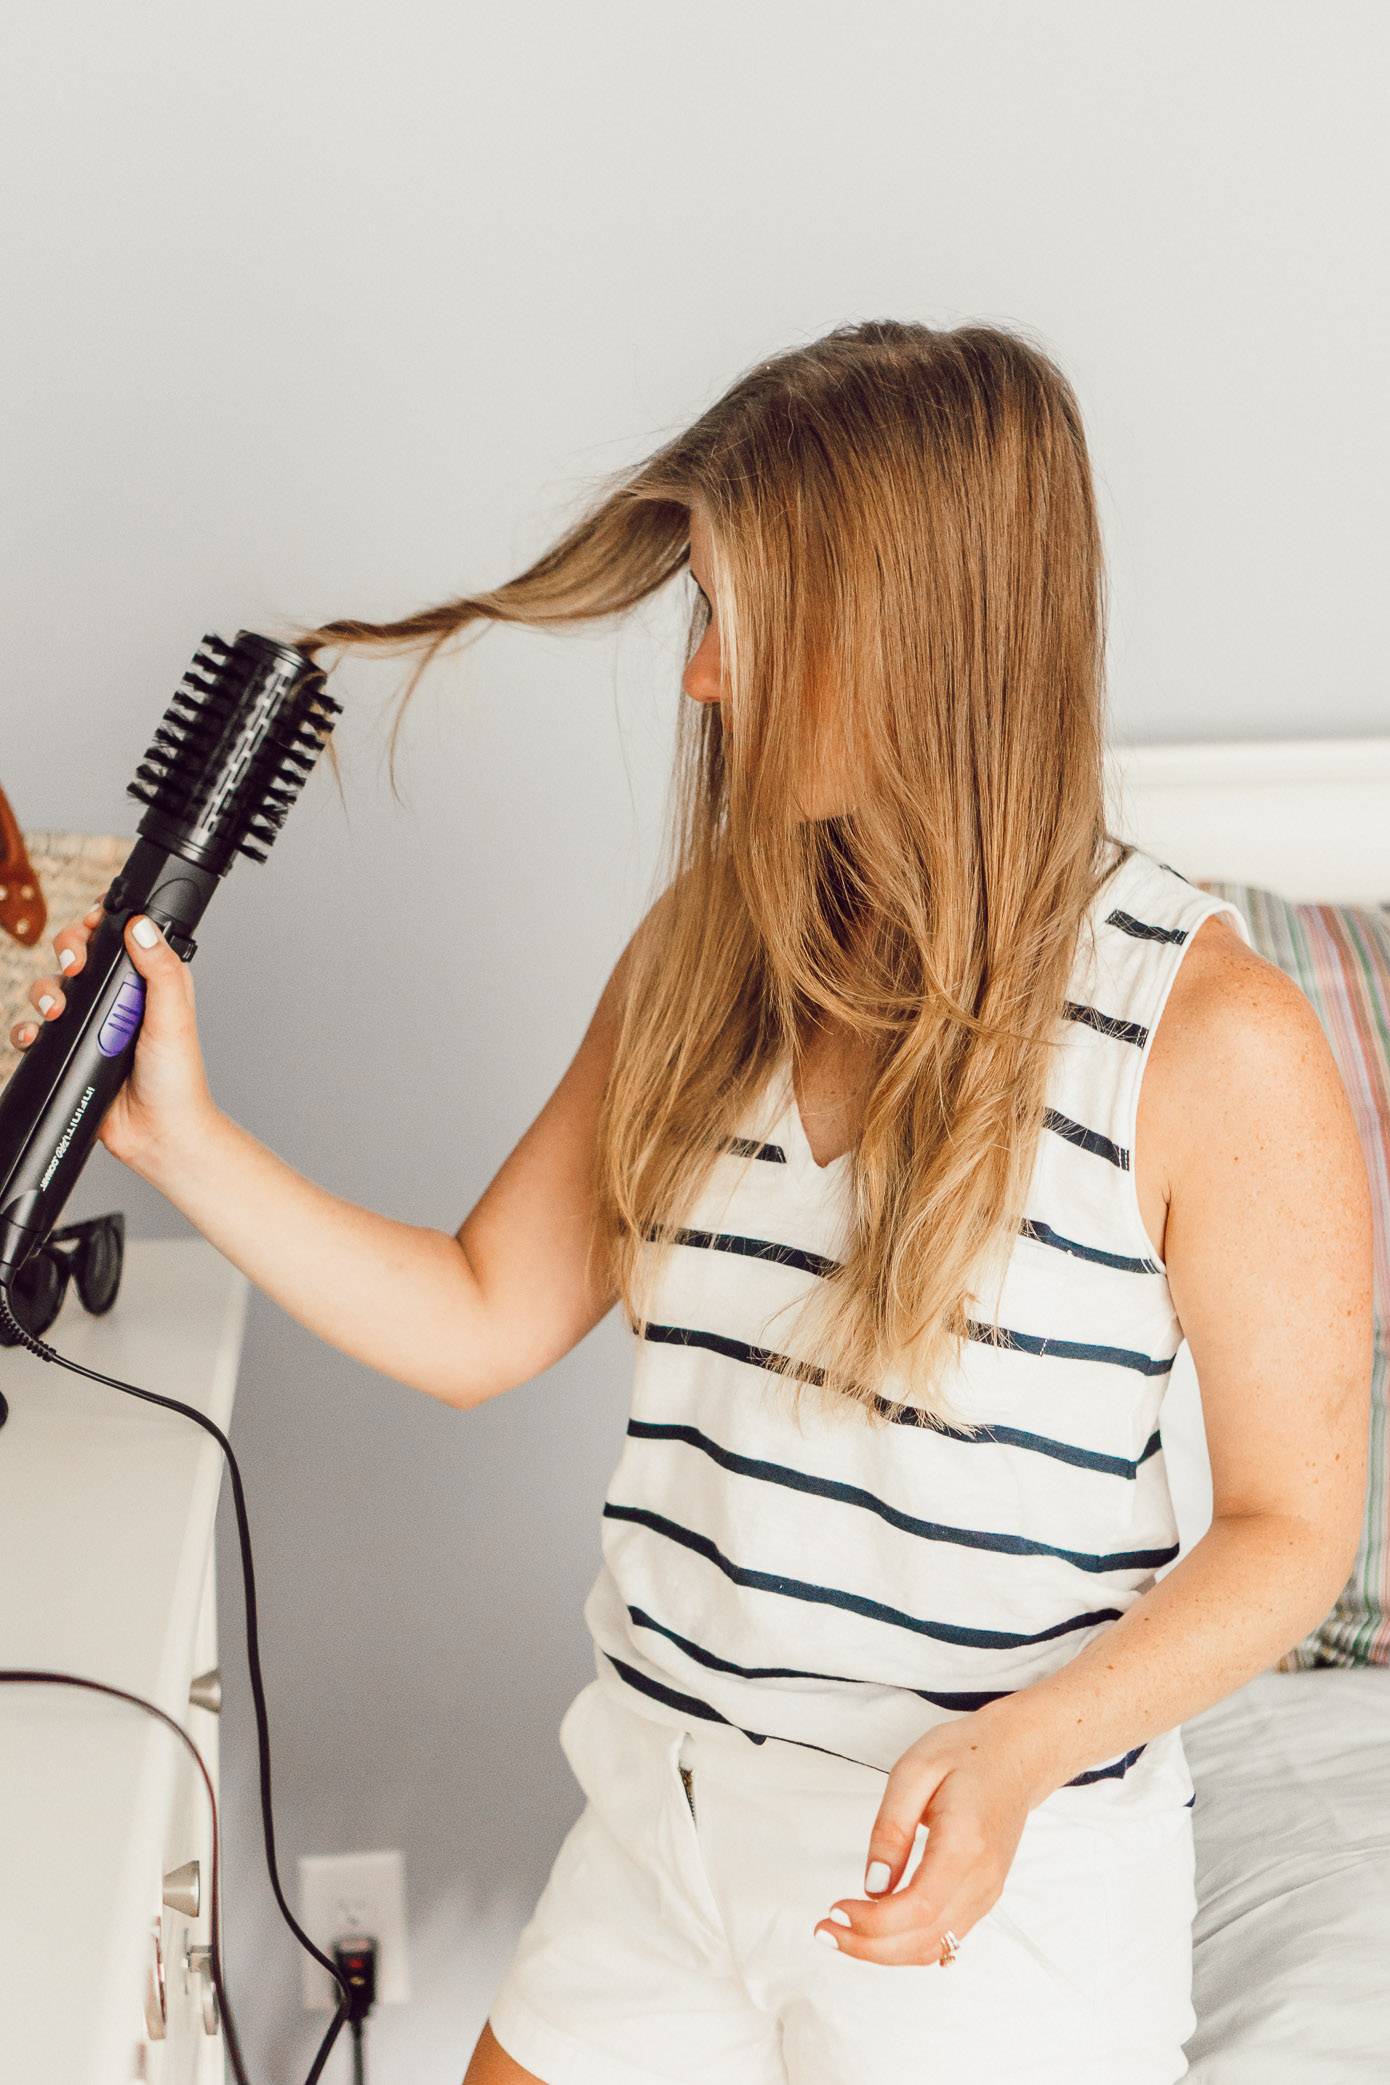 Two Summer Hairstyles with Conair | InfinitiPRO Spin Air Brush and InfinitiPRO Curl Secret 2.0 | Easy Summer Hairstyles featured on Louella Reese